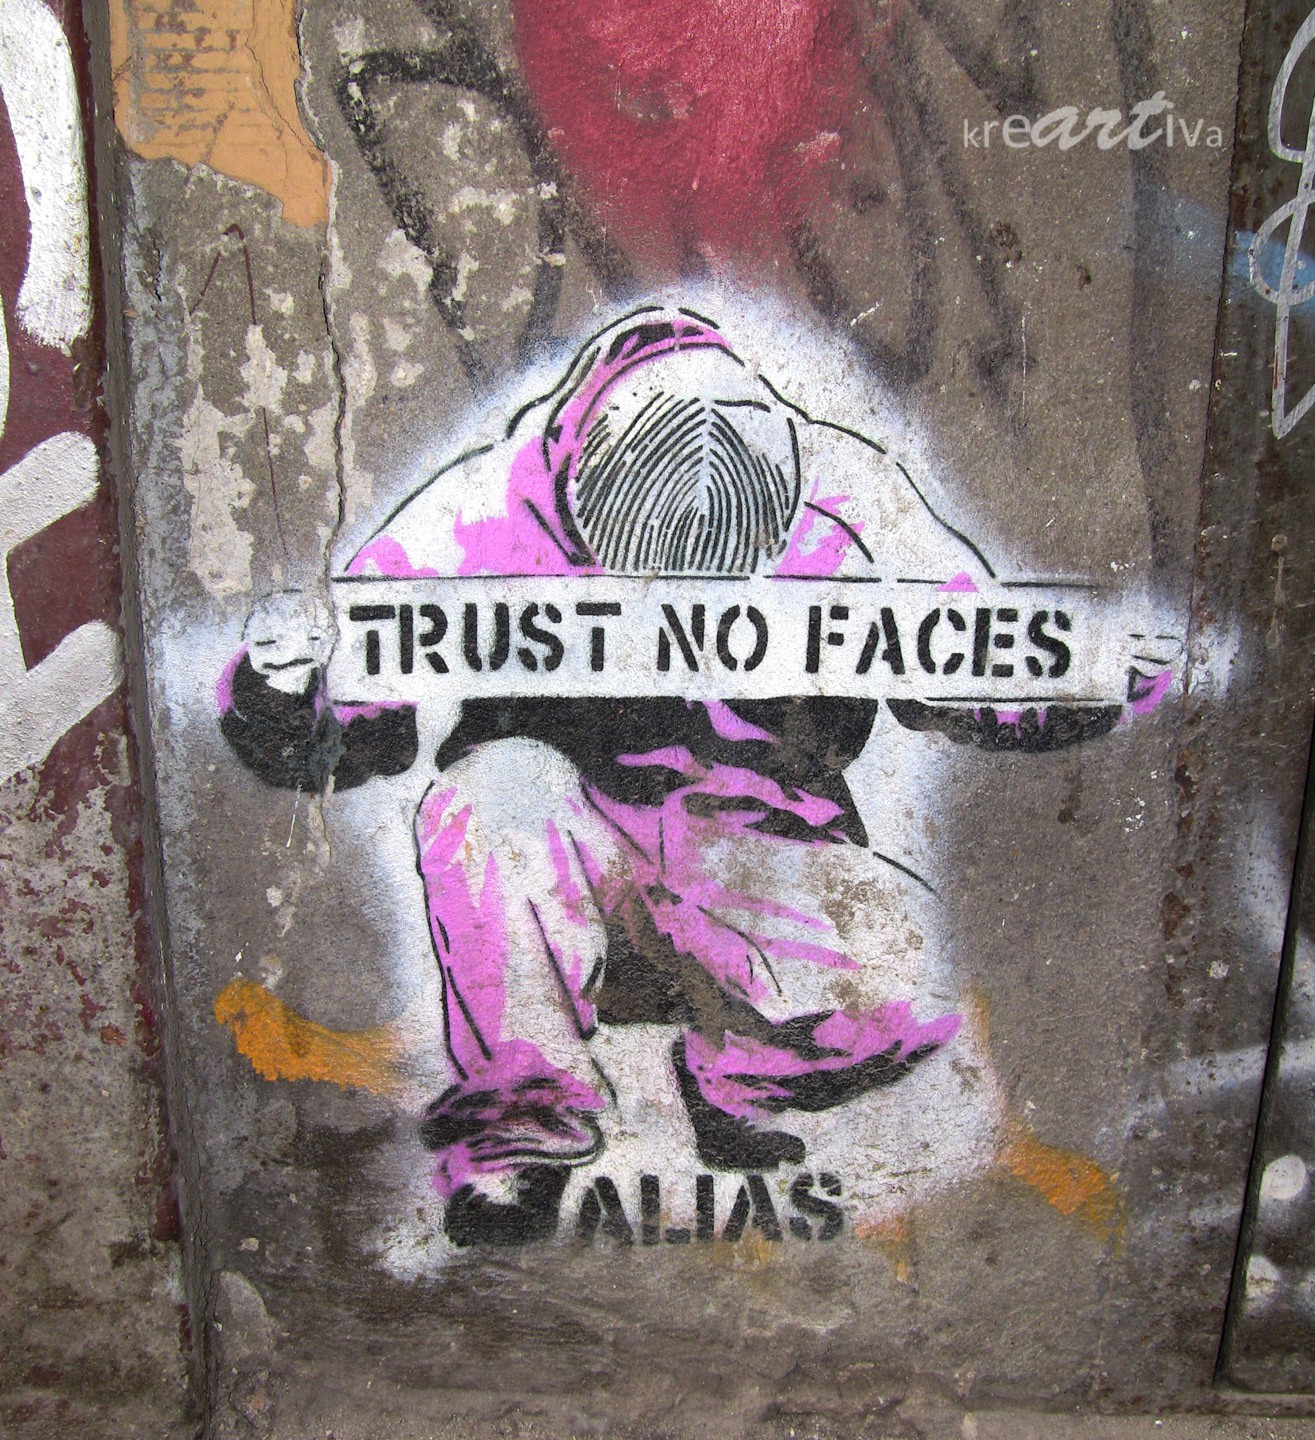 trust no faces (by alias), Berlin Germany 2010.